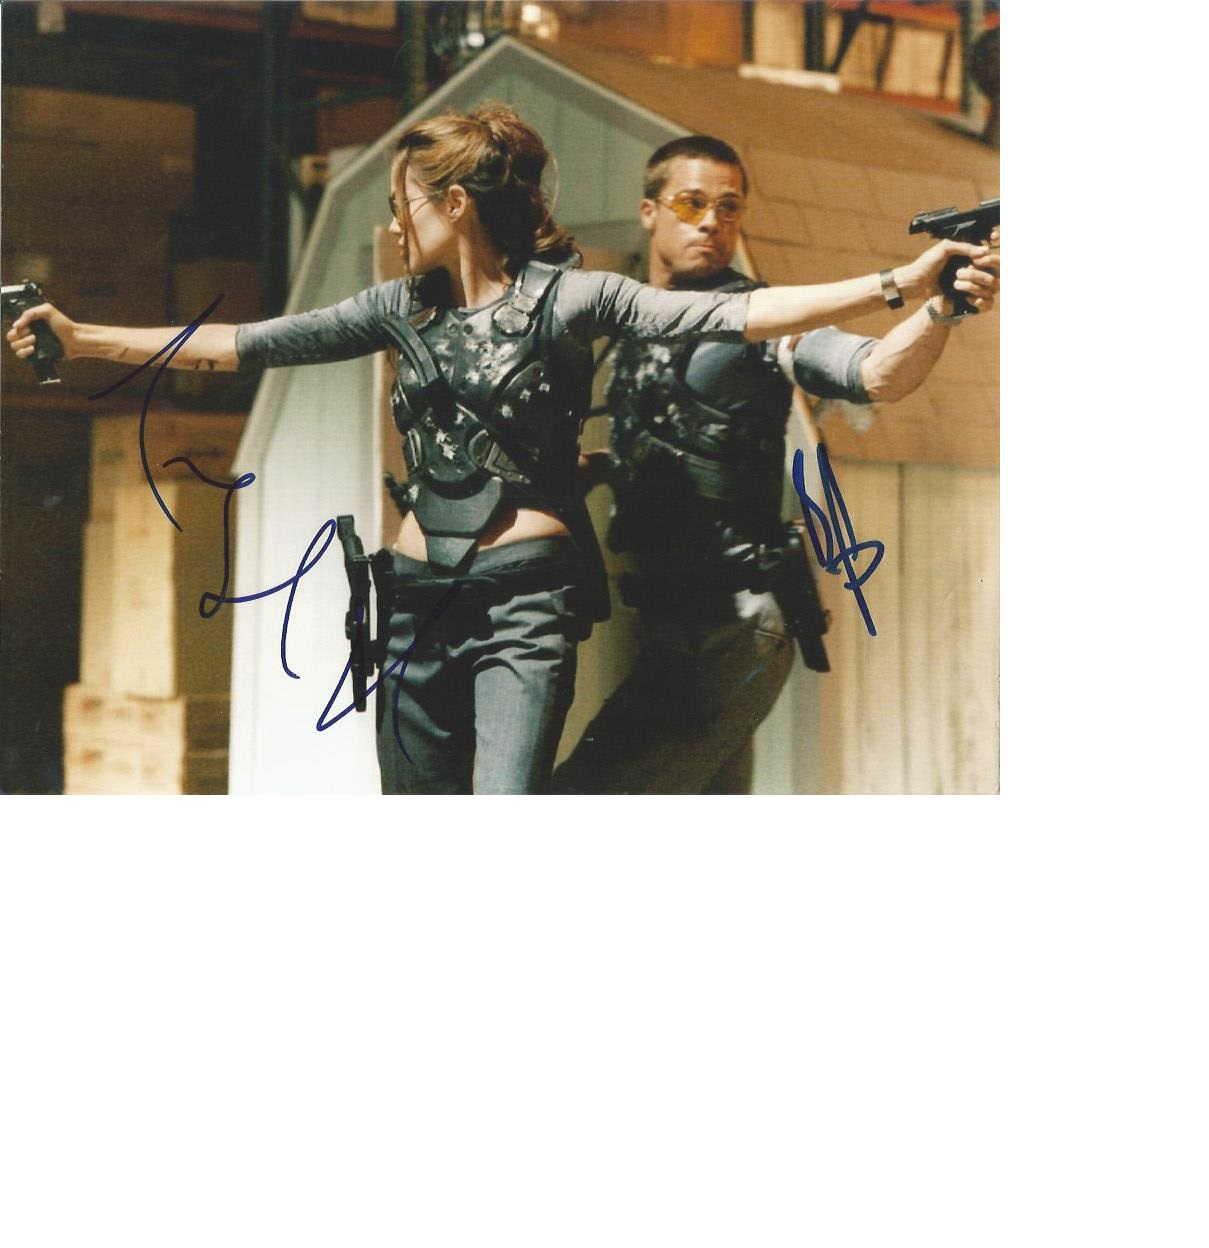 Lot 31 - Angelina Jolie and Brad Pitt signed stunning 10 x 8 colour action photo. Good Condition. All